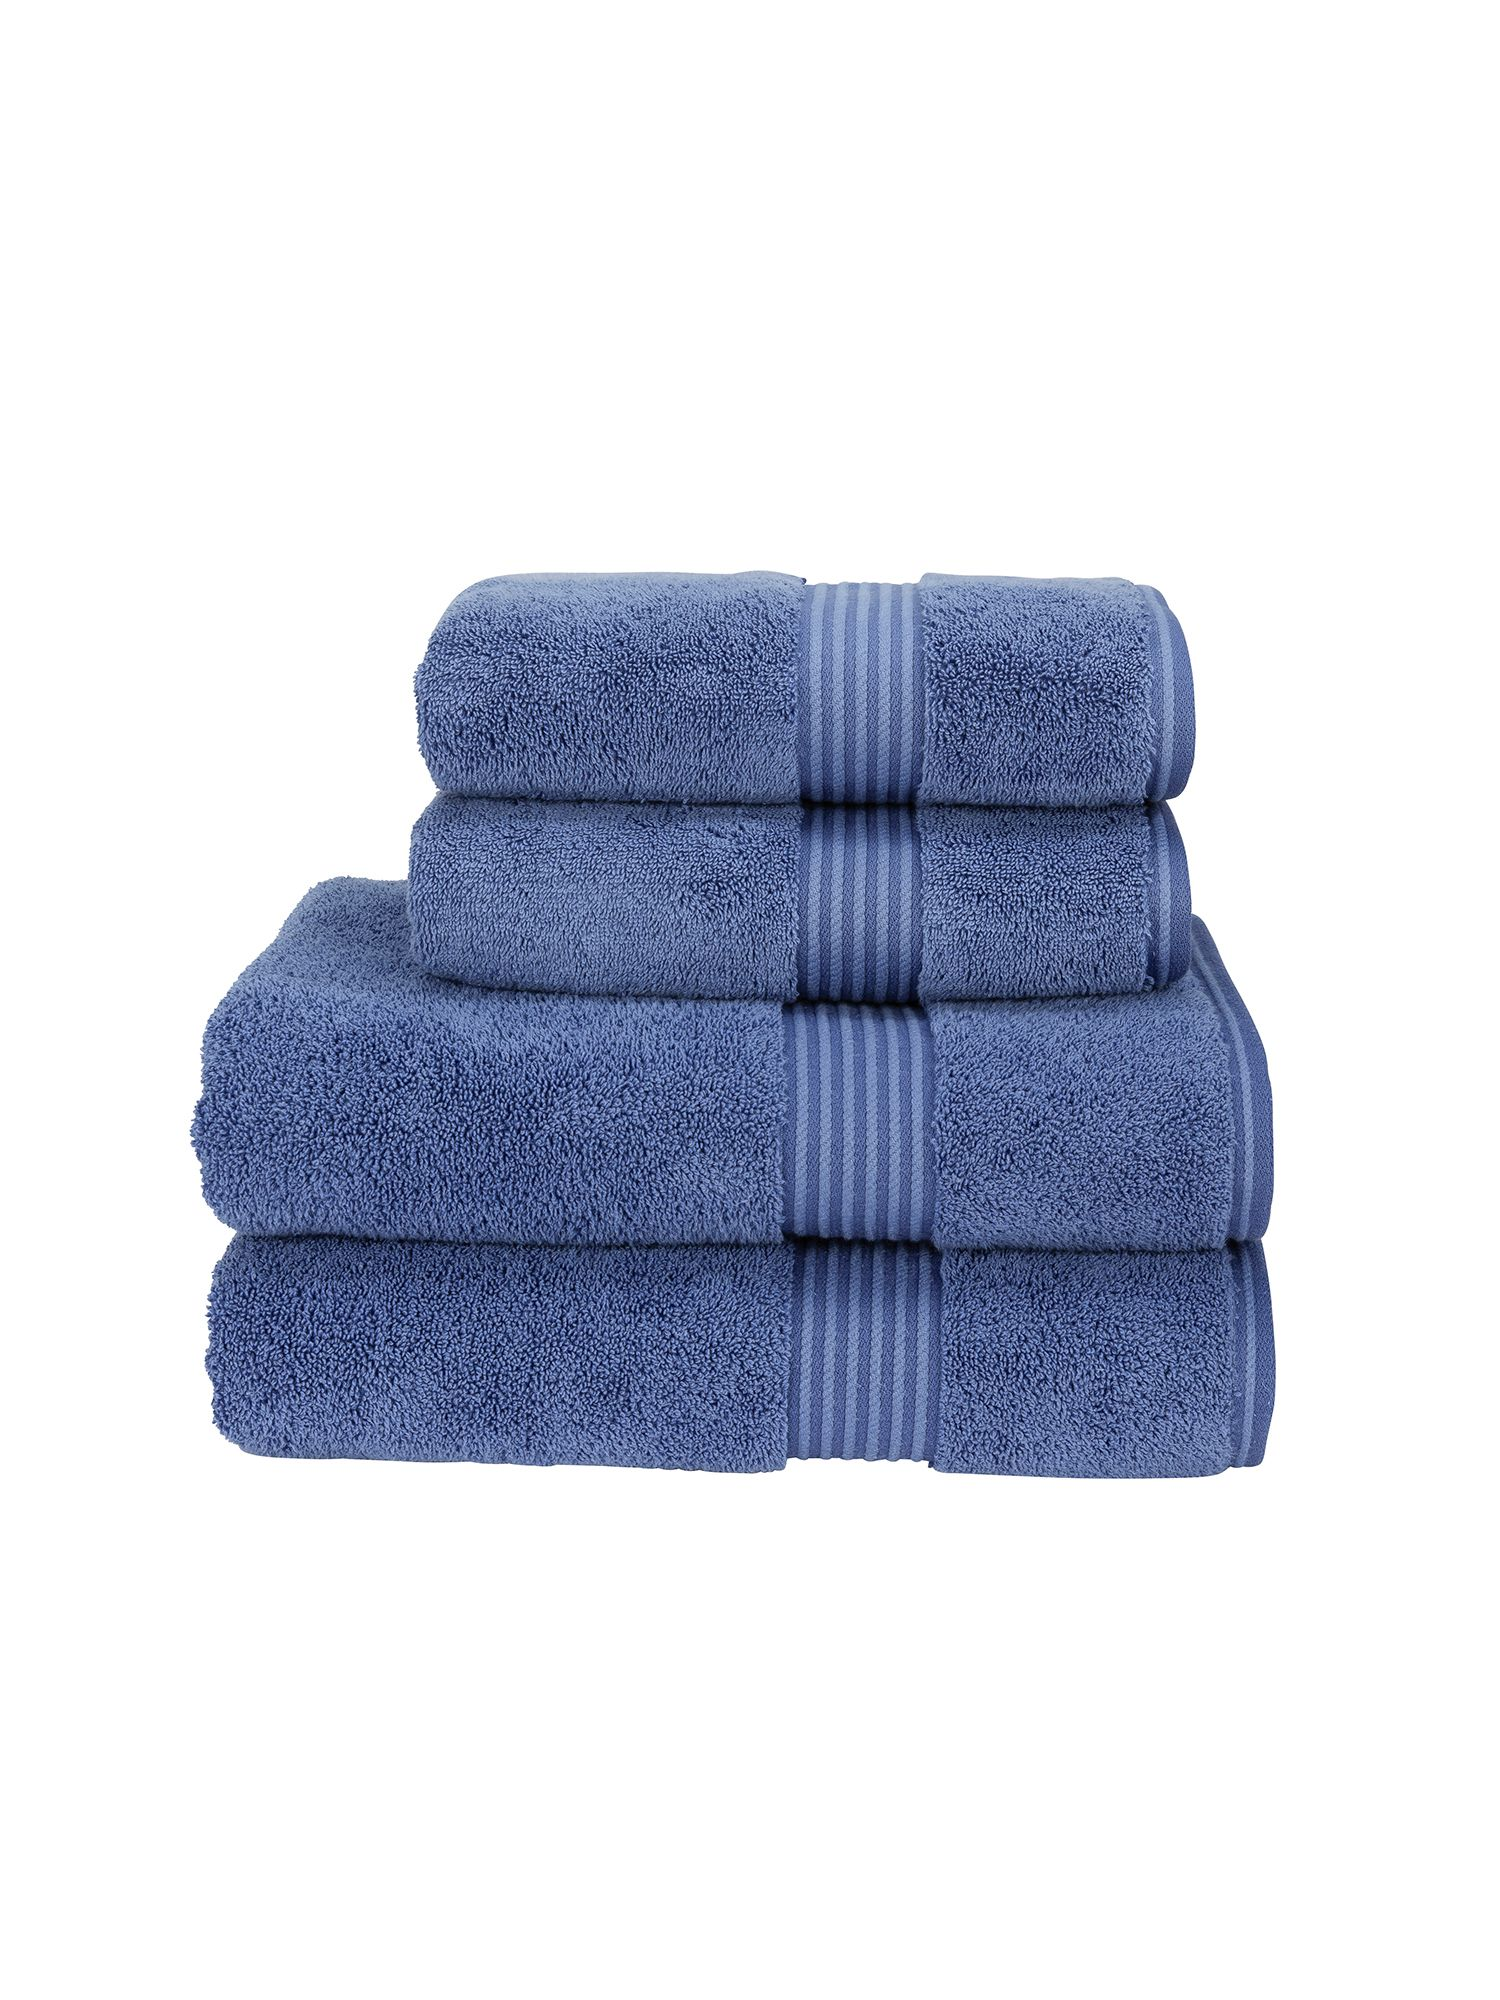 Supreme hygro towels deep sea